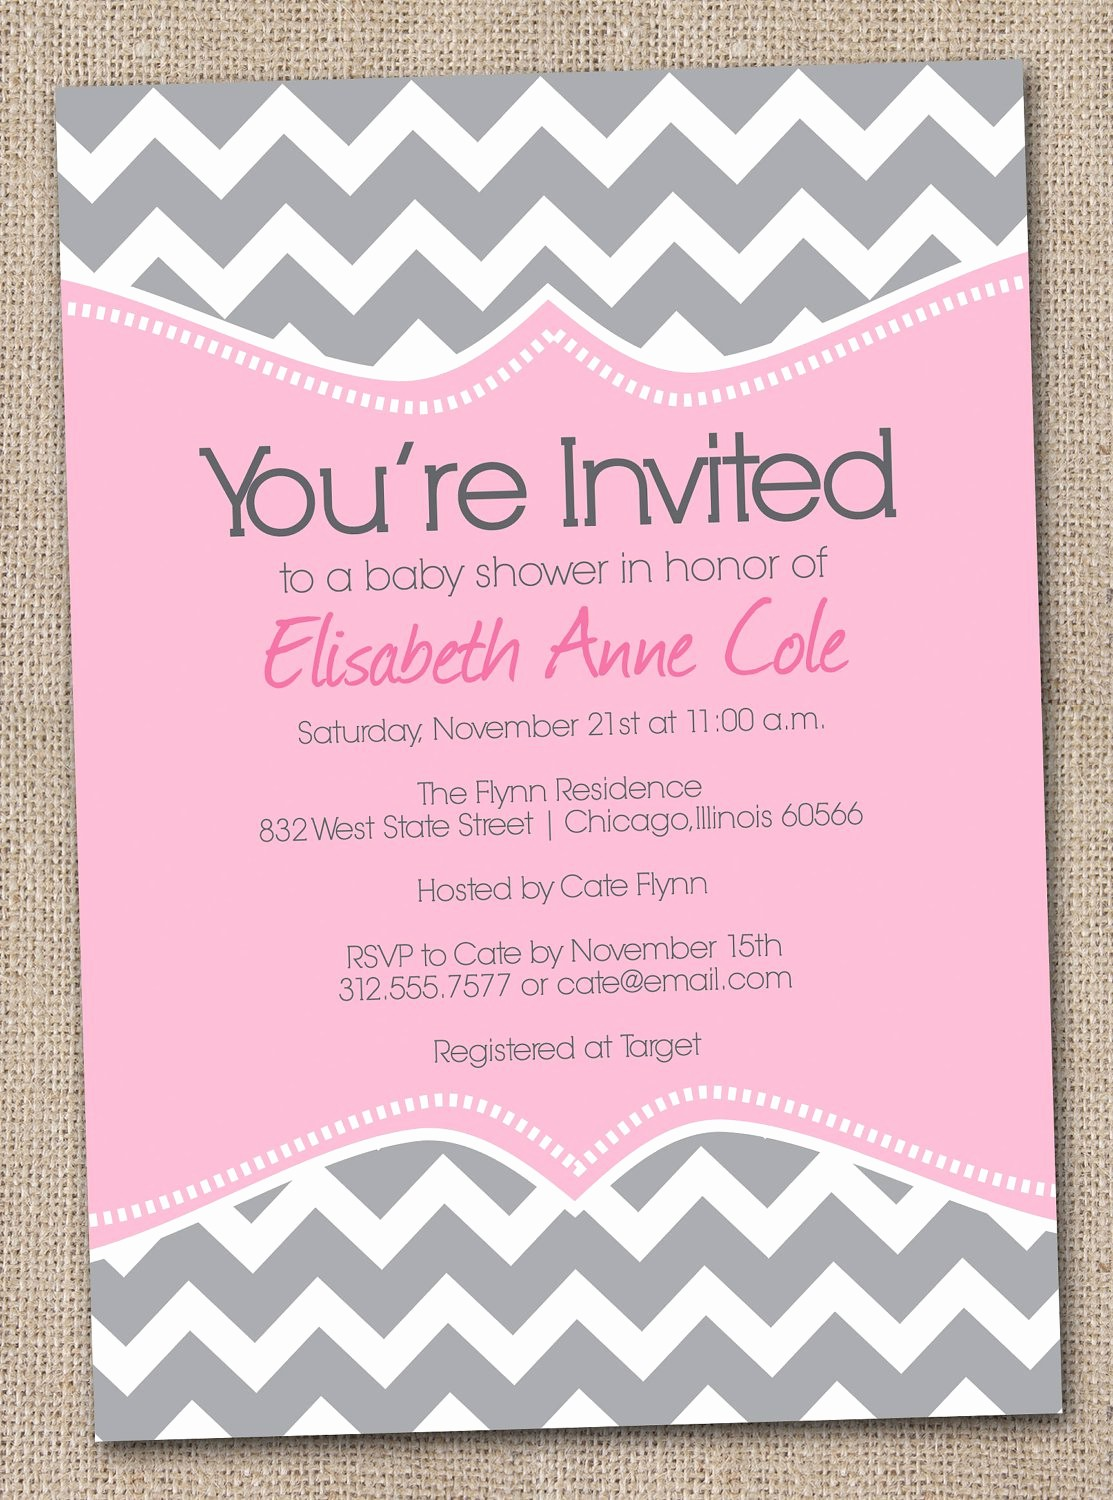 Baby Shower Invitation List Template Elegant Baby Shower Invitation Free Baby Shower Invitation